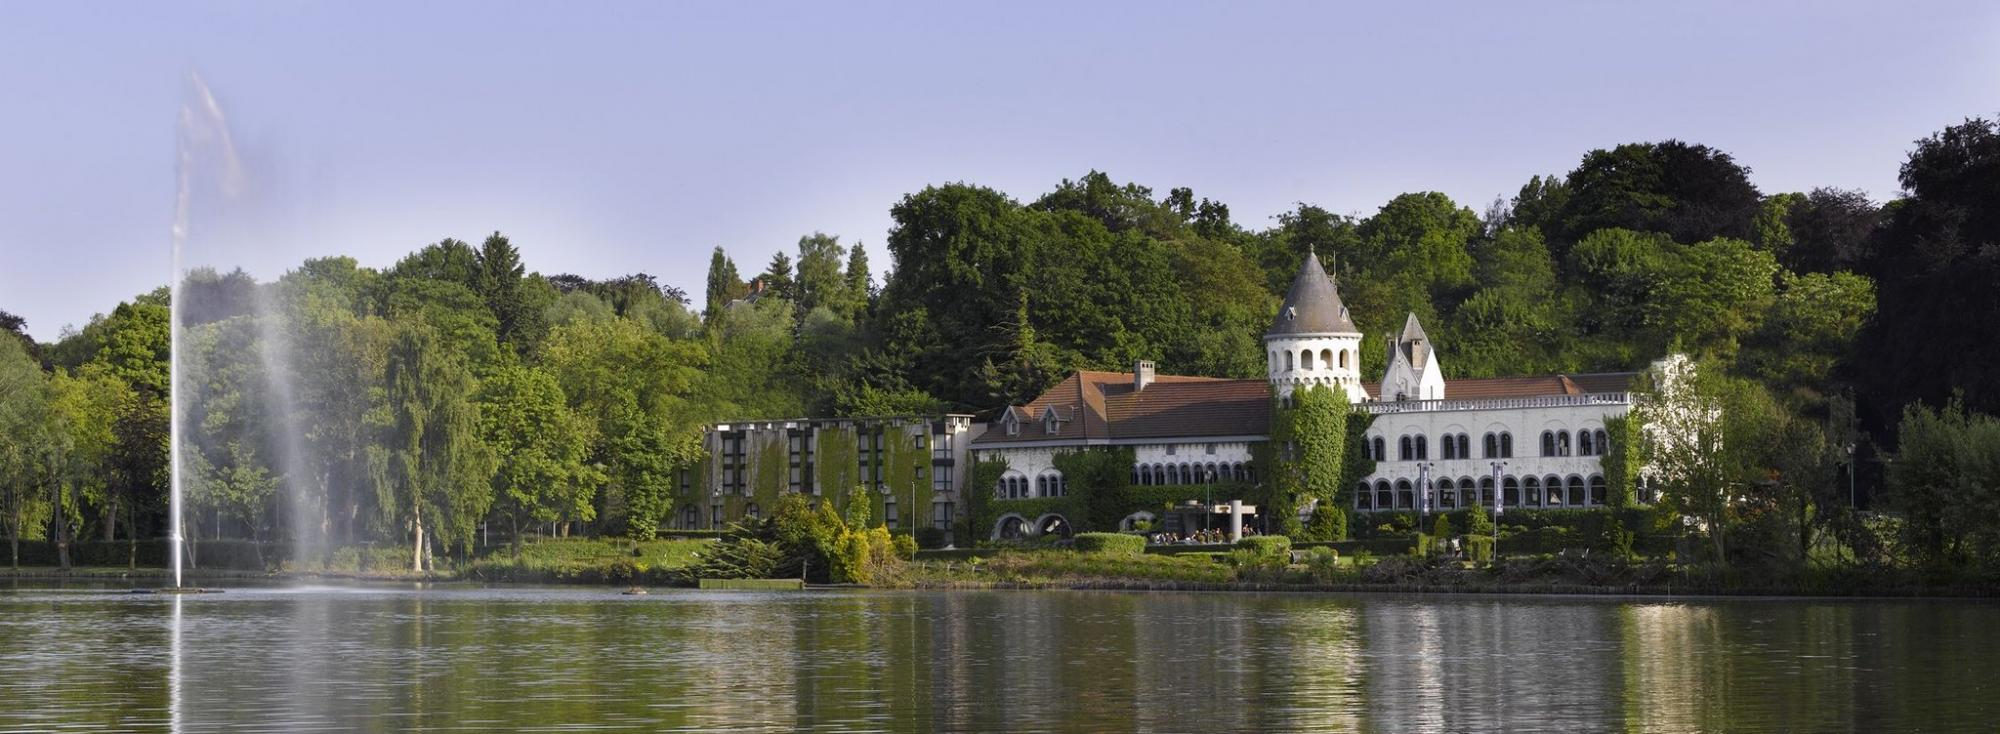 Martins Chateau du Lac